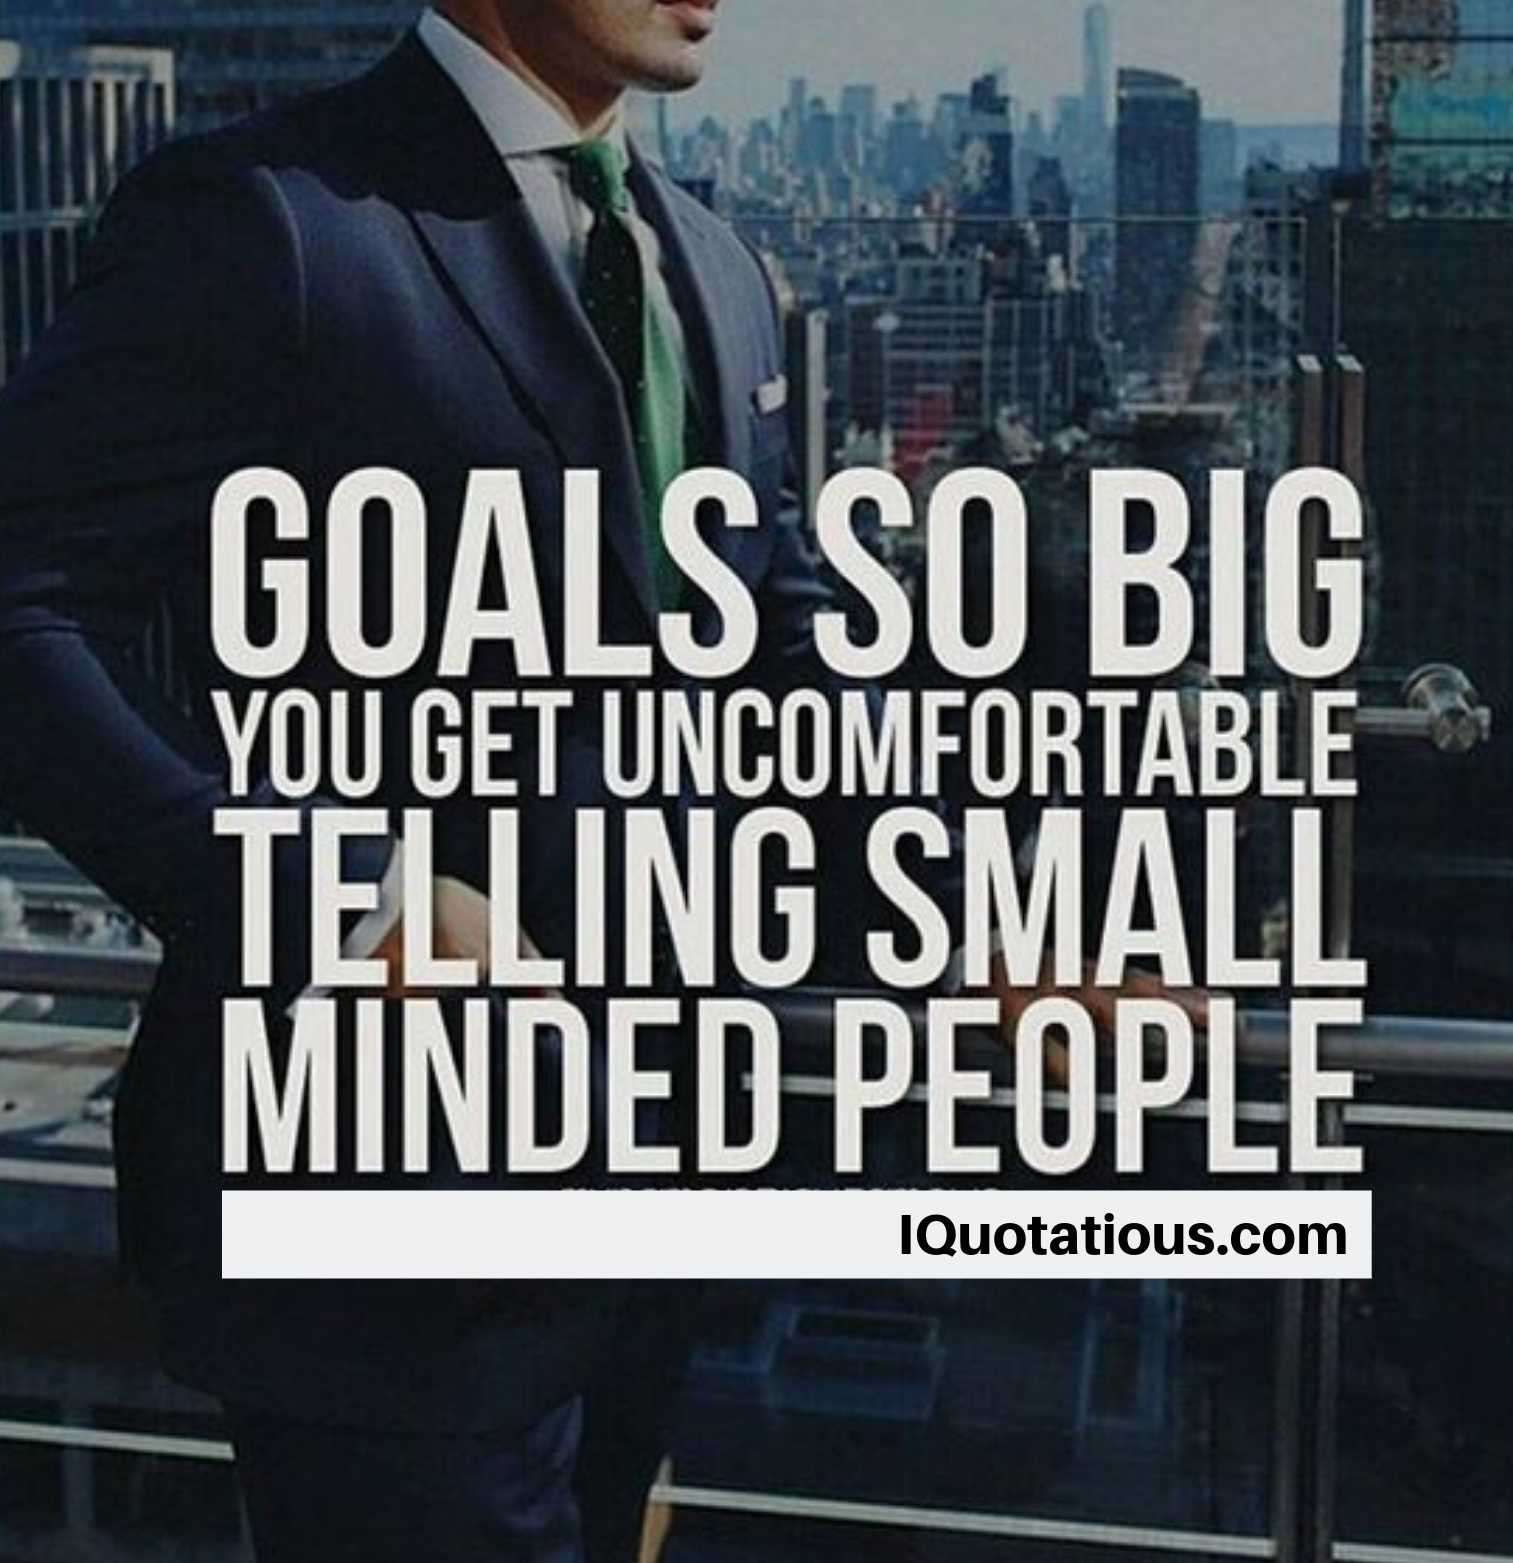 Goals so big you get uncomfortable telling small minded people